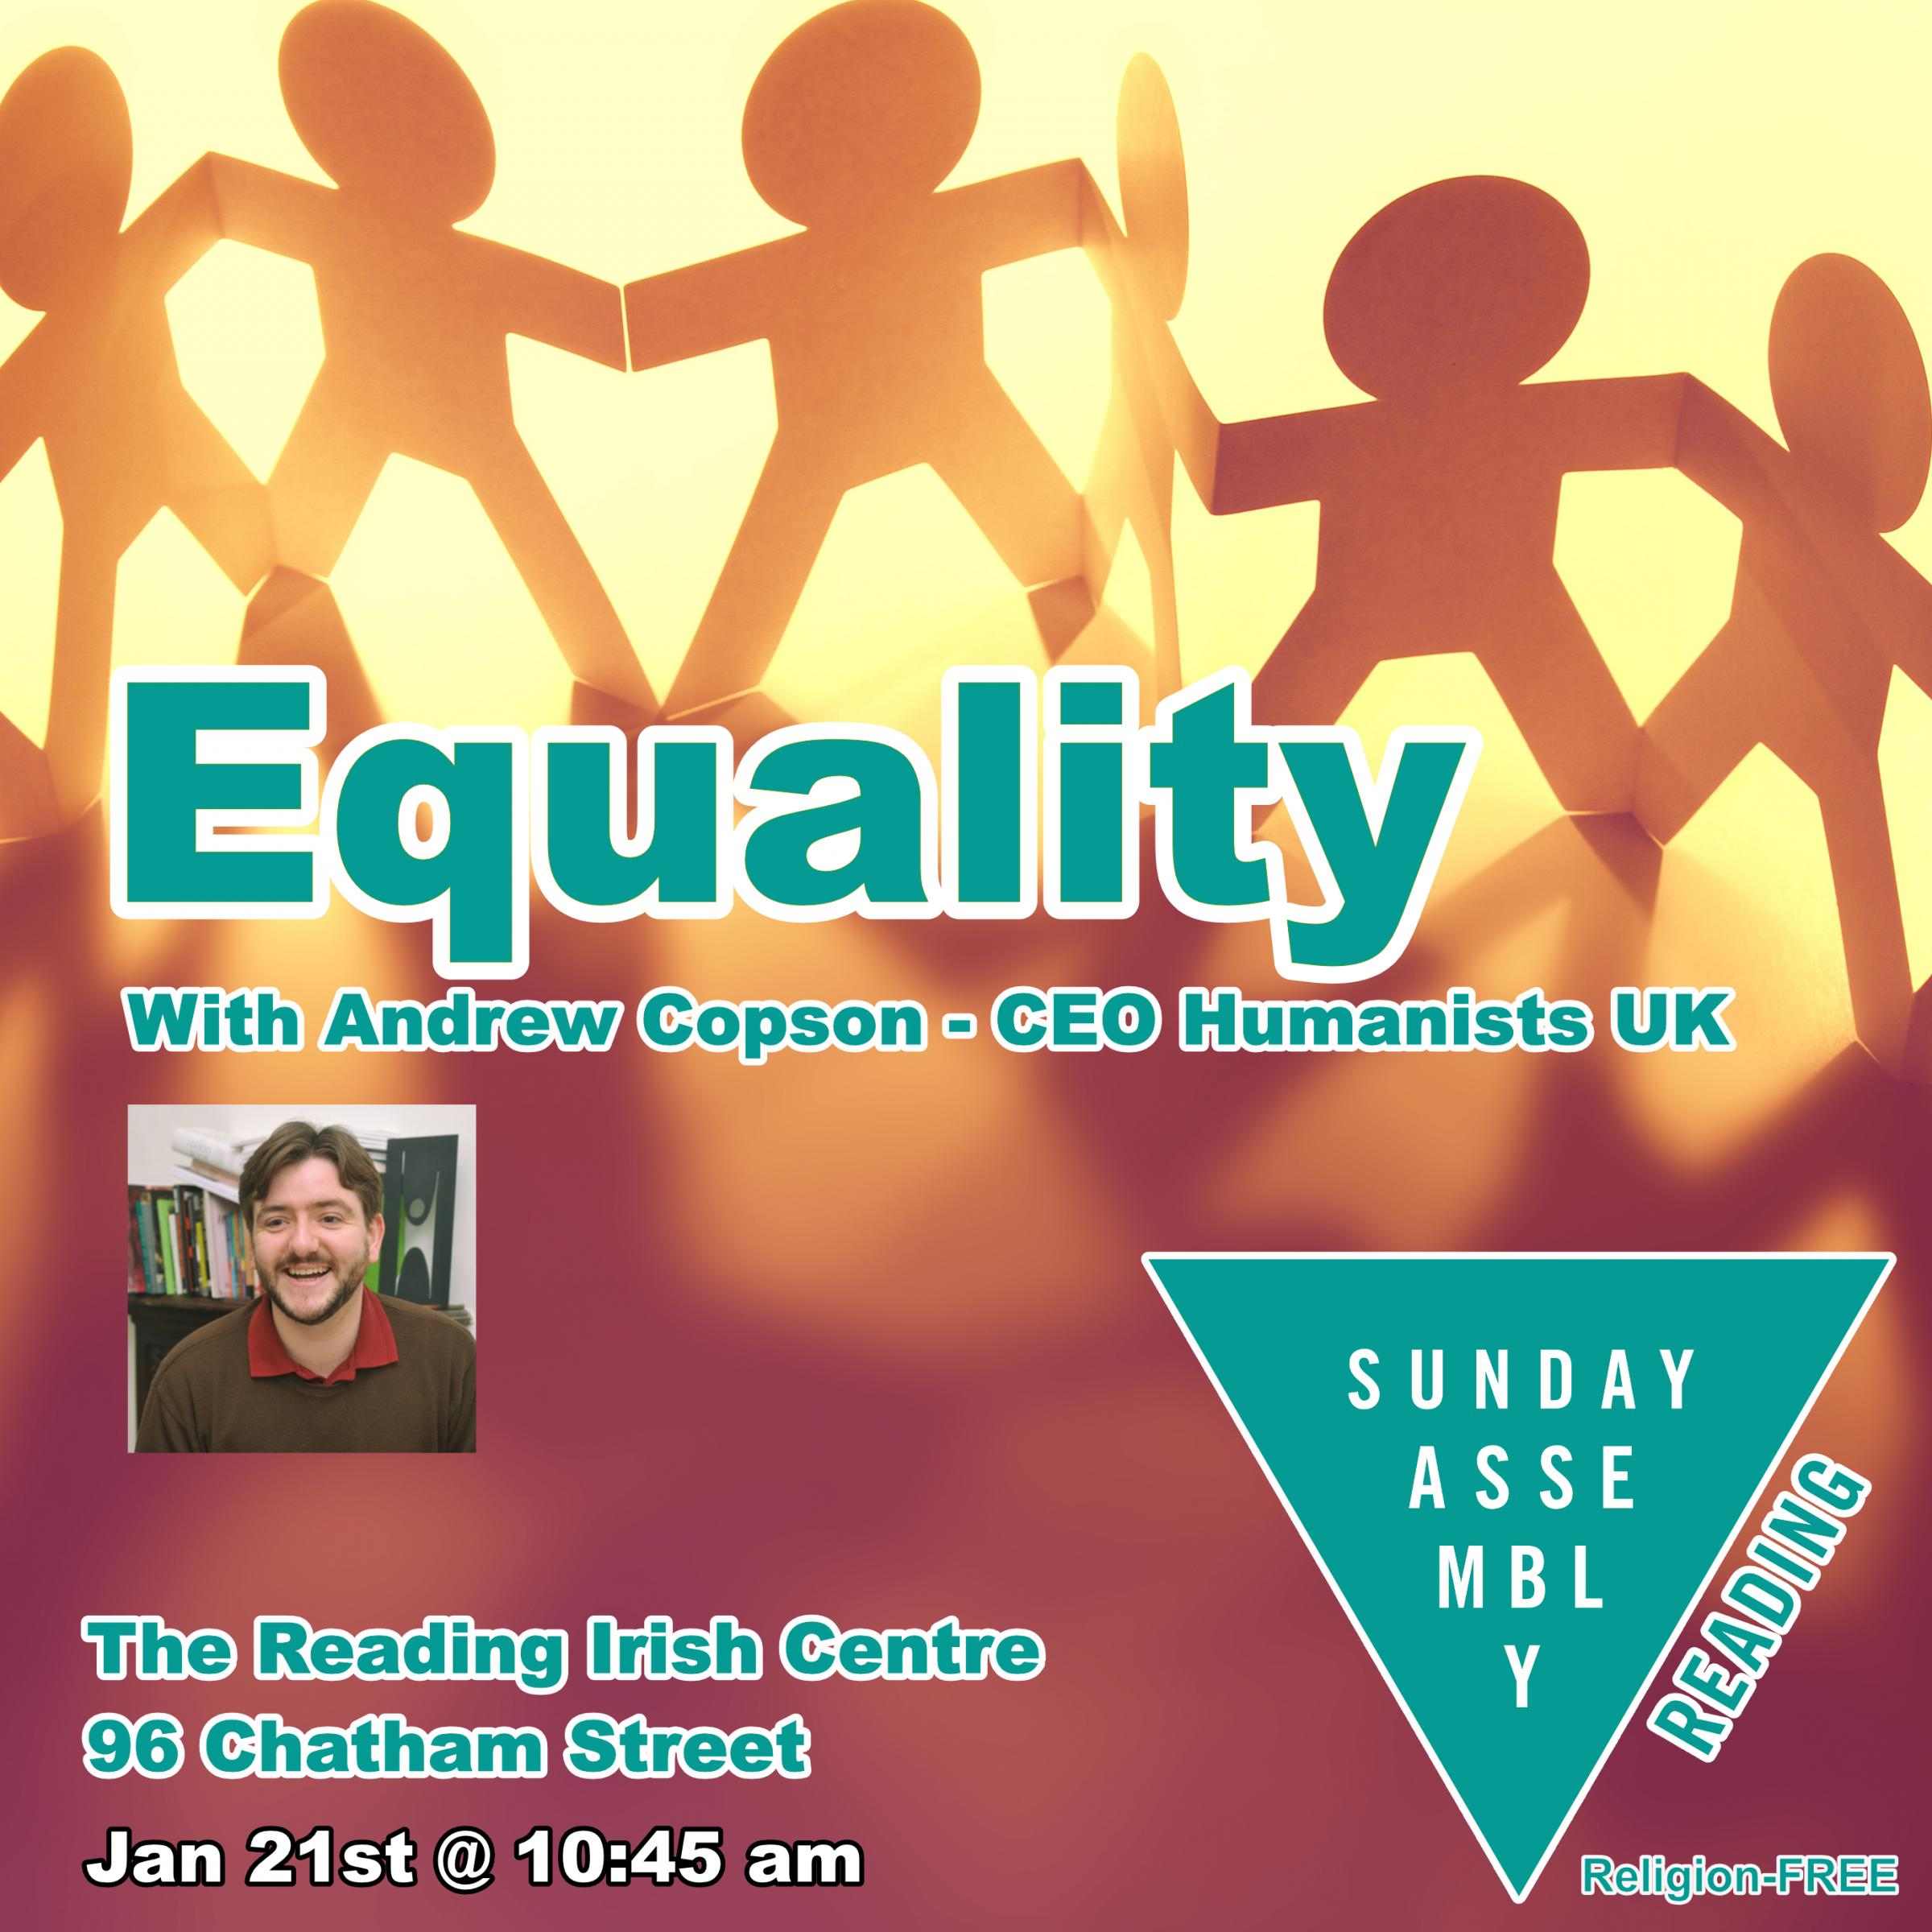 Sunday Assembly Reading - Equality